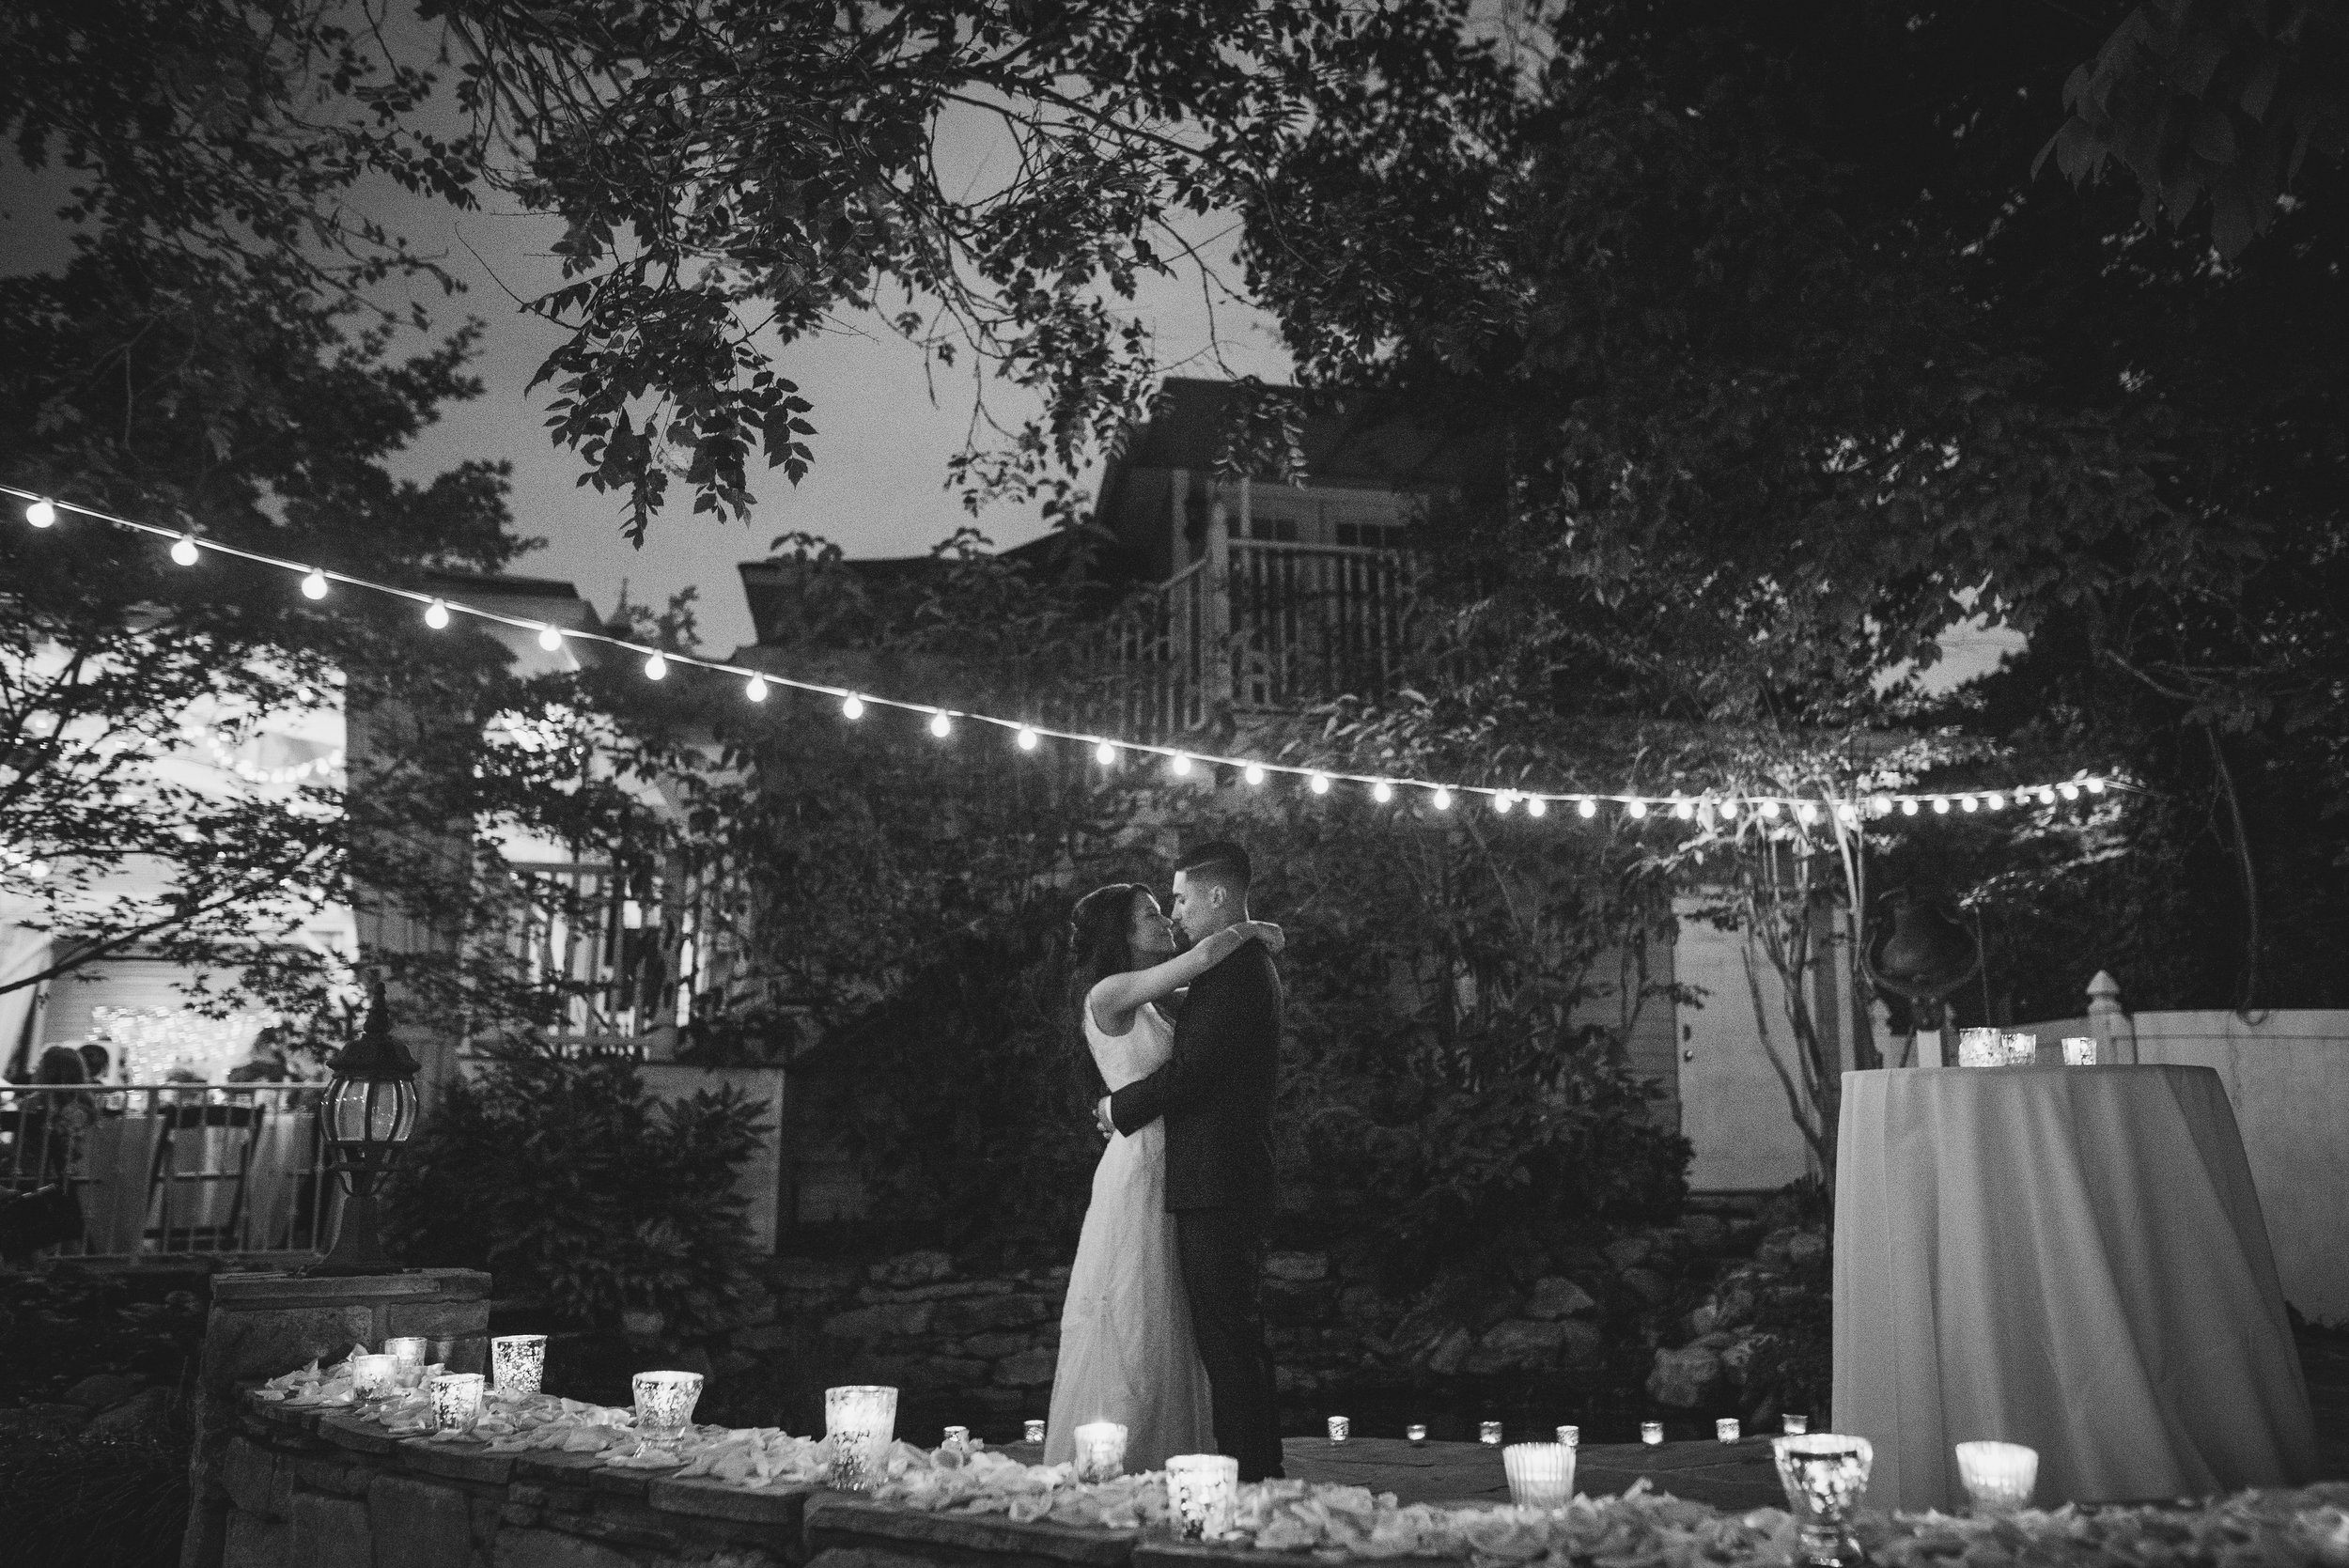 Nashville-Wedding-Photographer-CJsoffthesquare 71.jpg